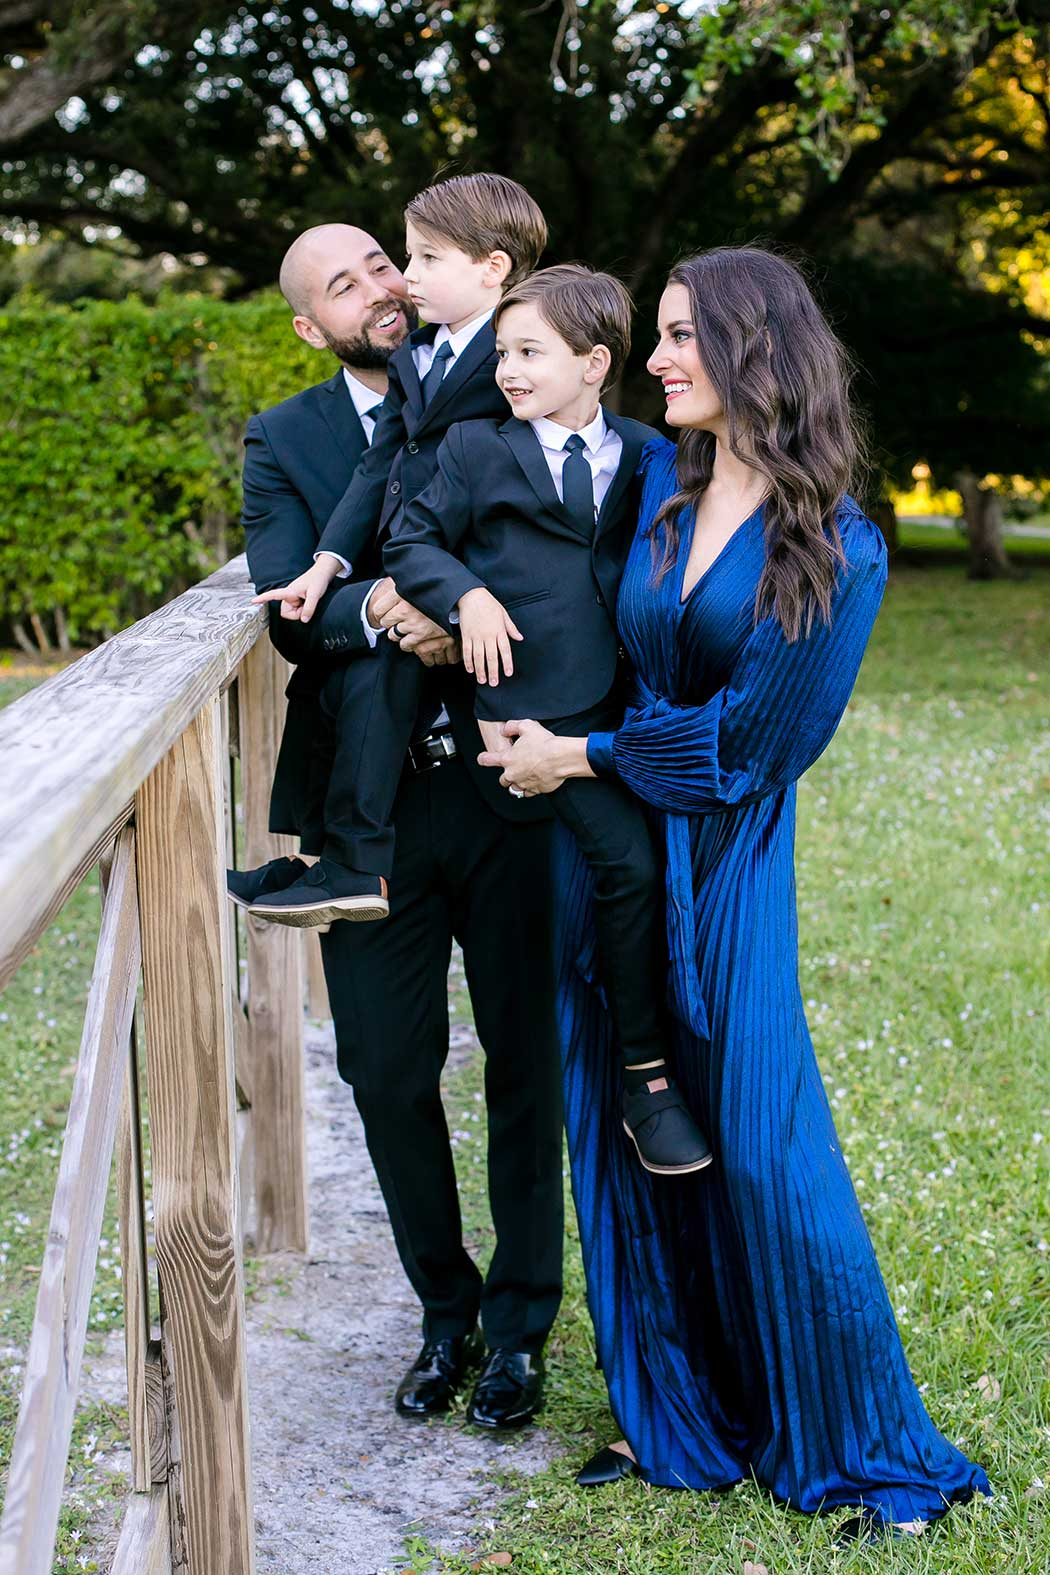 family photography session at robbins preserve near fort lauderdale | family photographer south florida | fort lauderdale park photographs